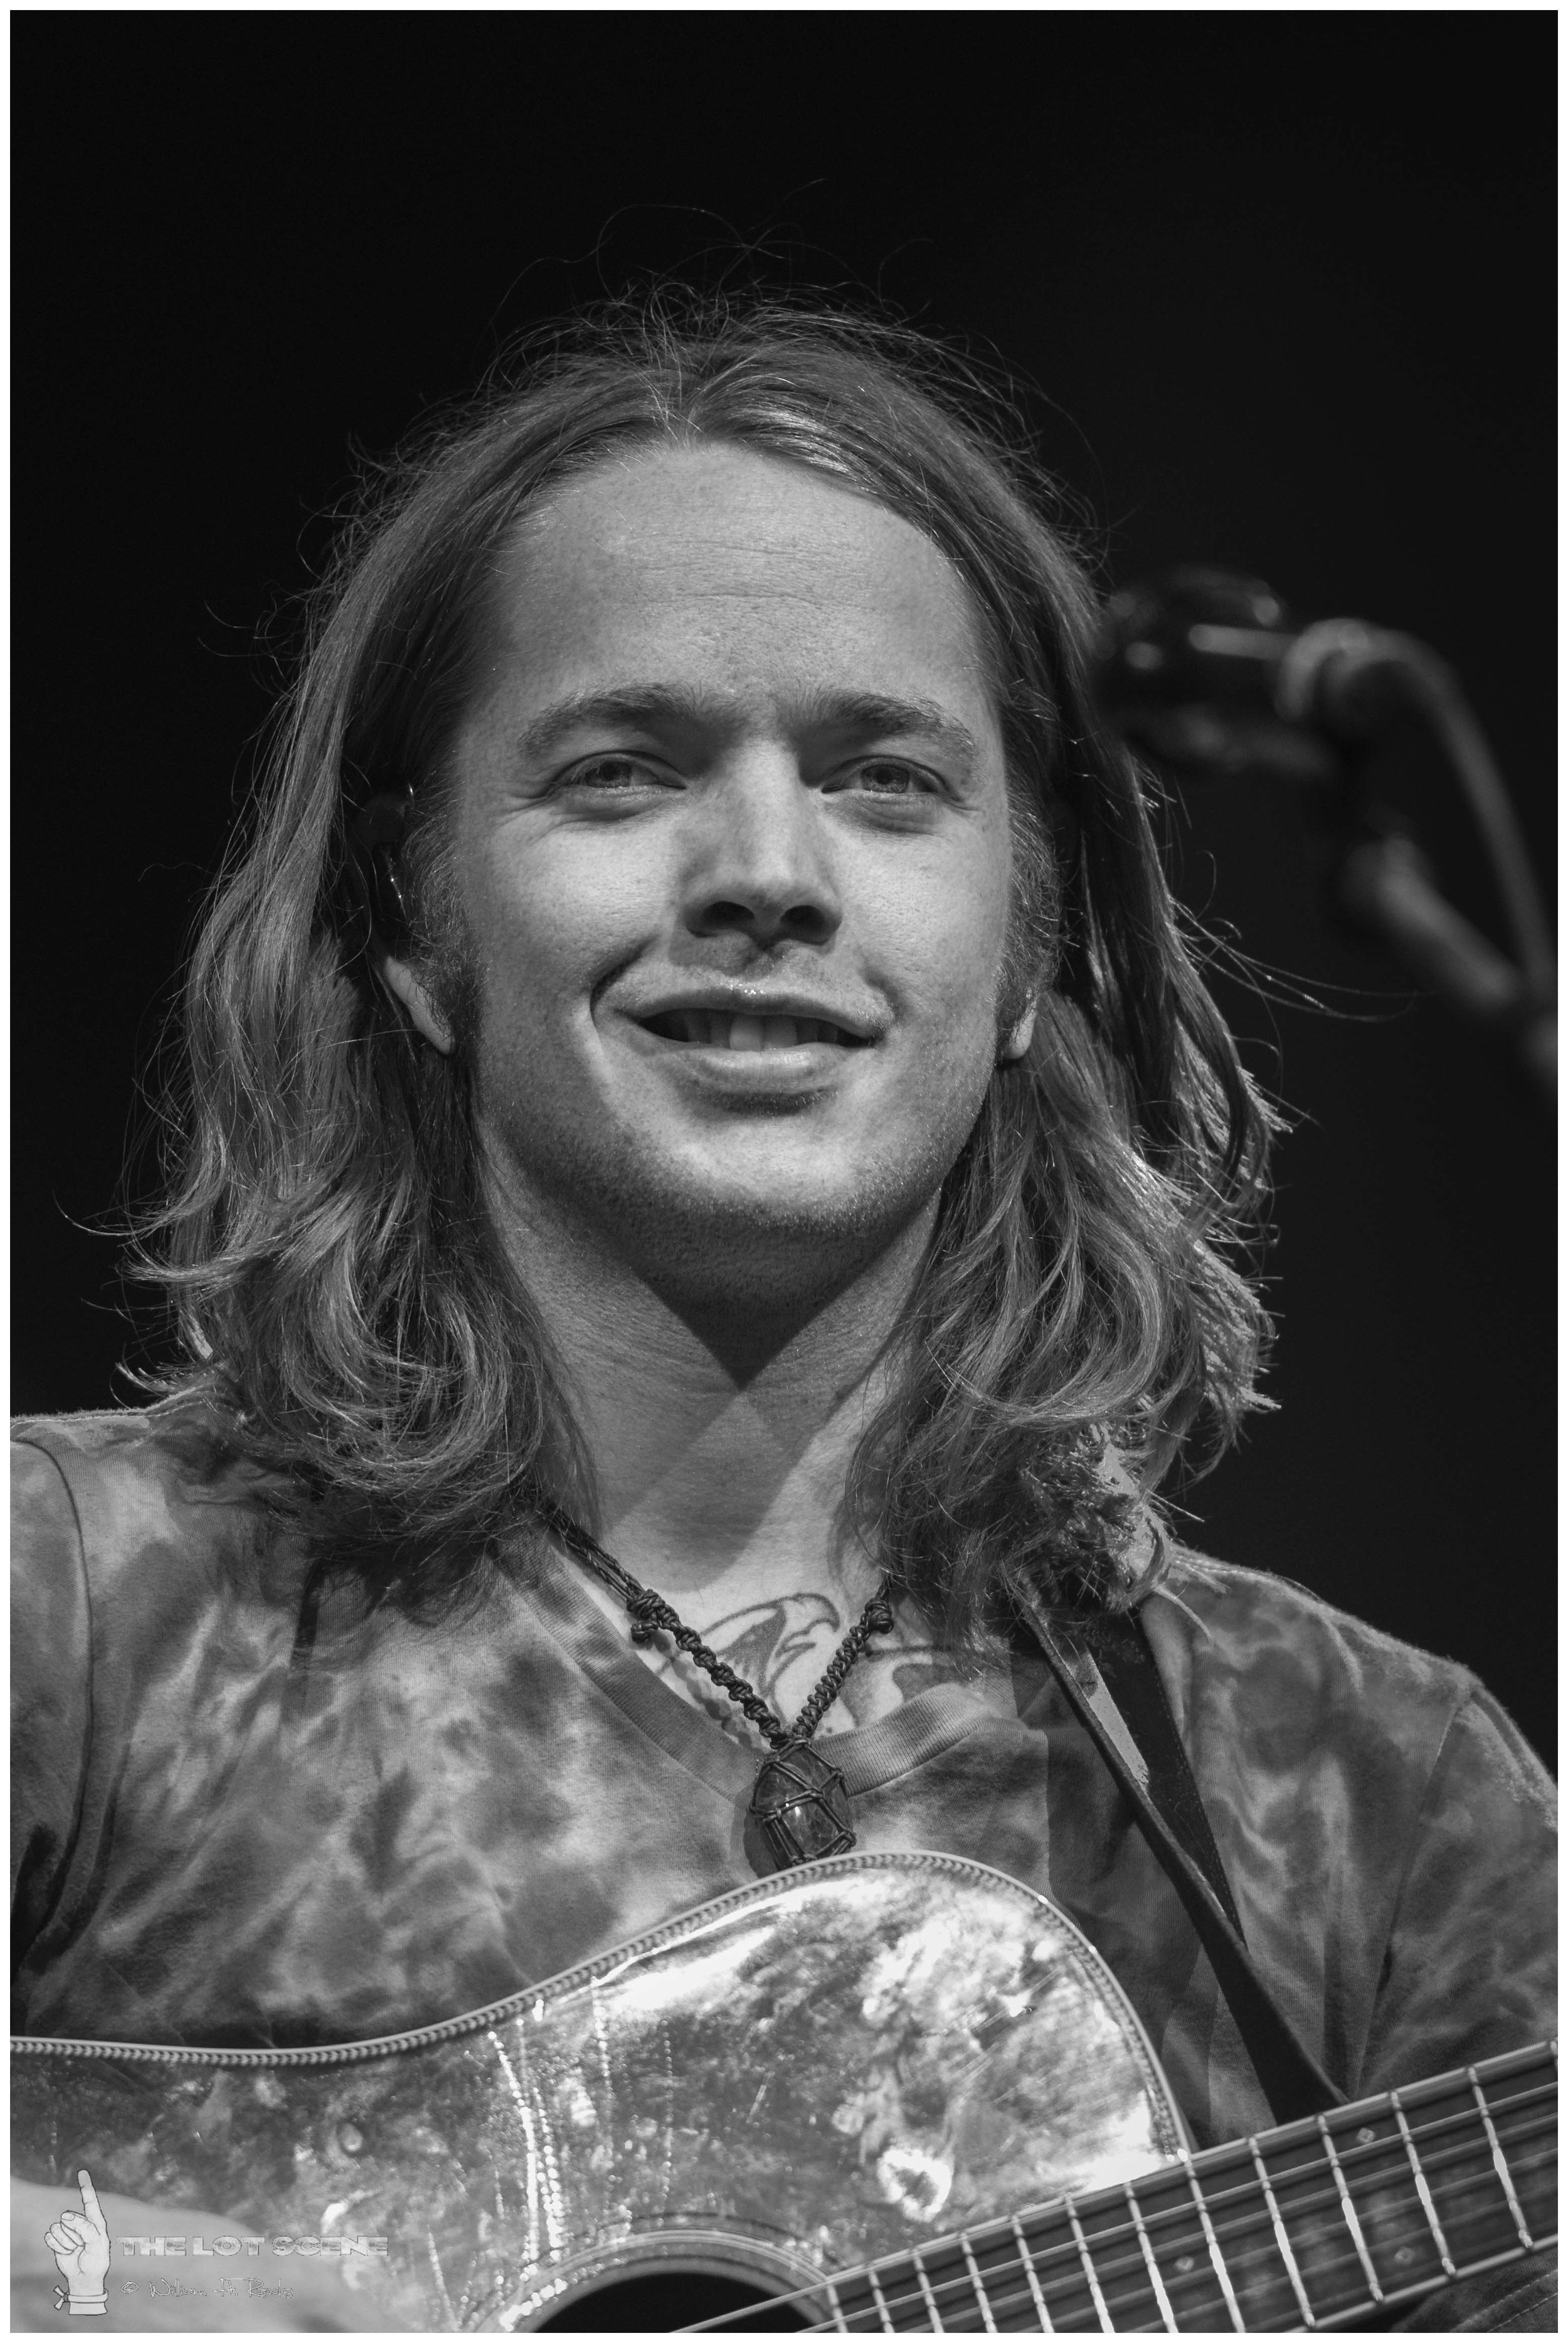 Billy Strings at The Anthem DC - February 2 2019 - 1.jpg